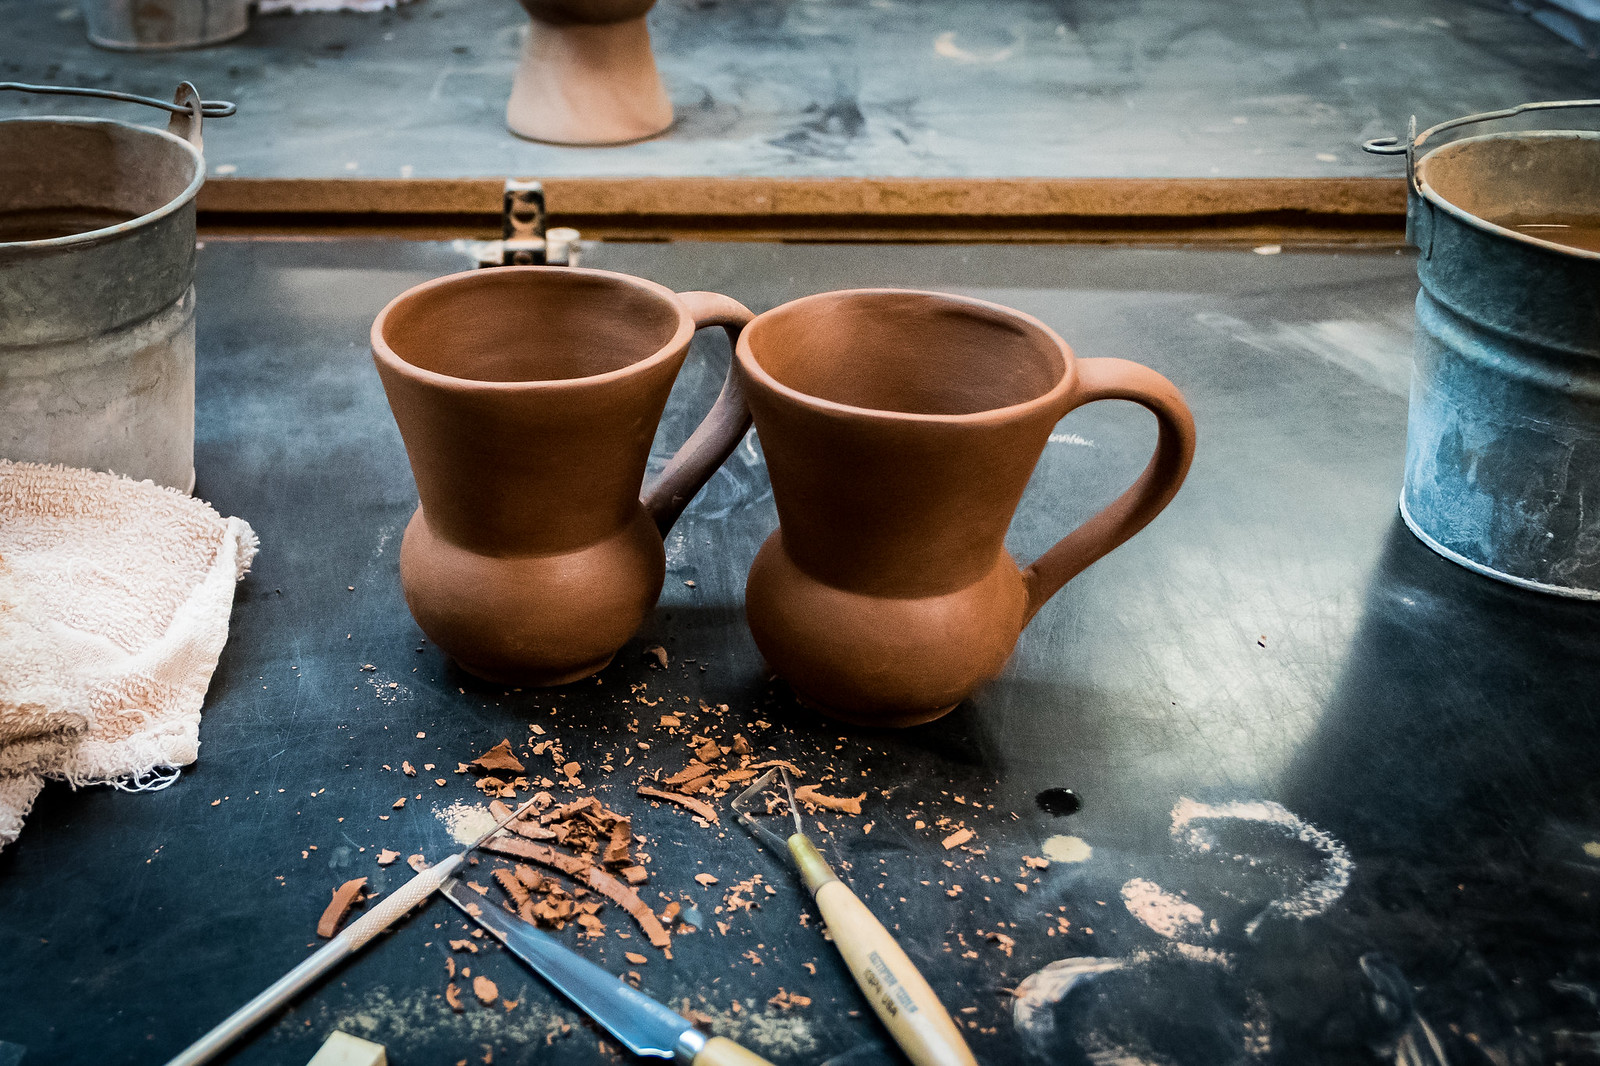 We smoothed and shaped these mugs ourselves! So fun!